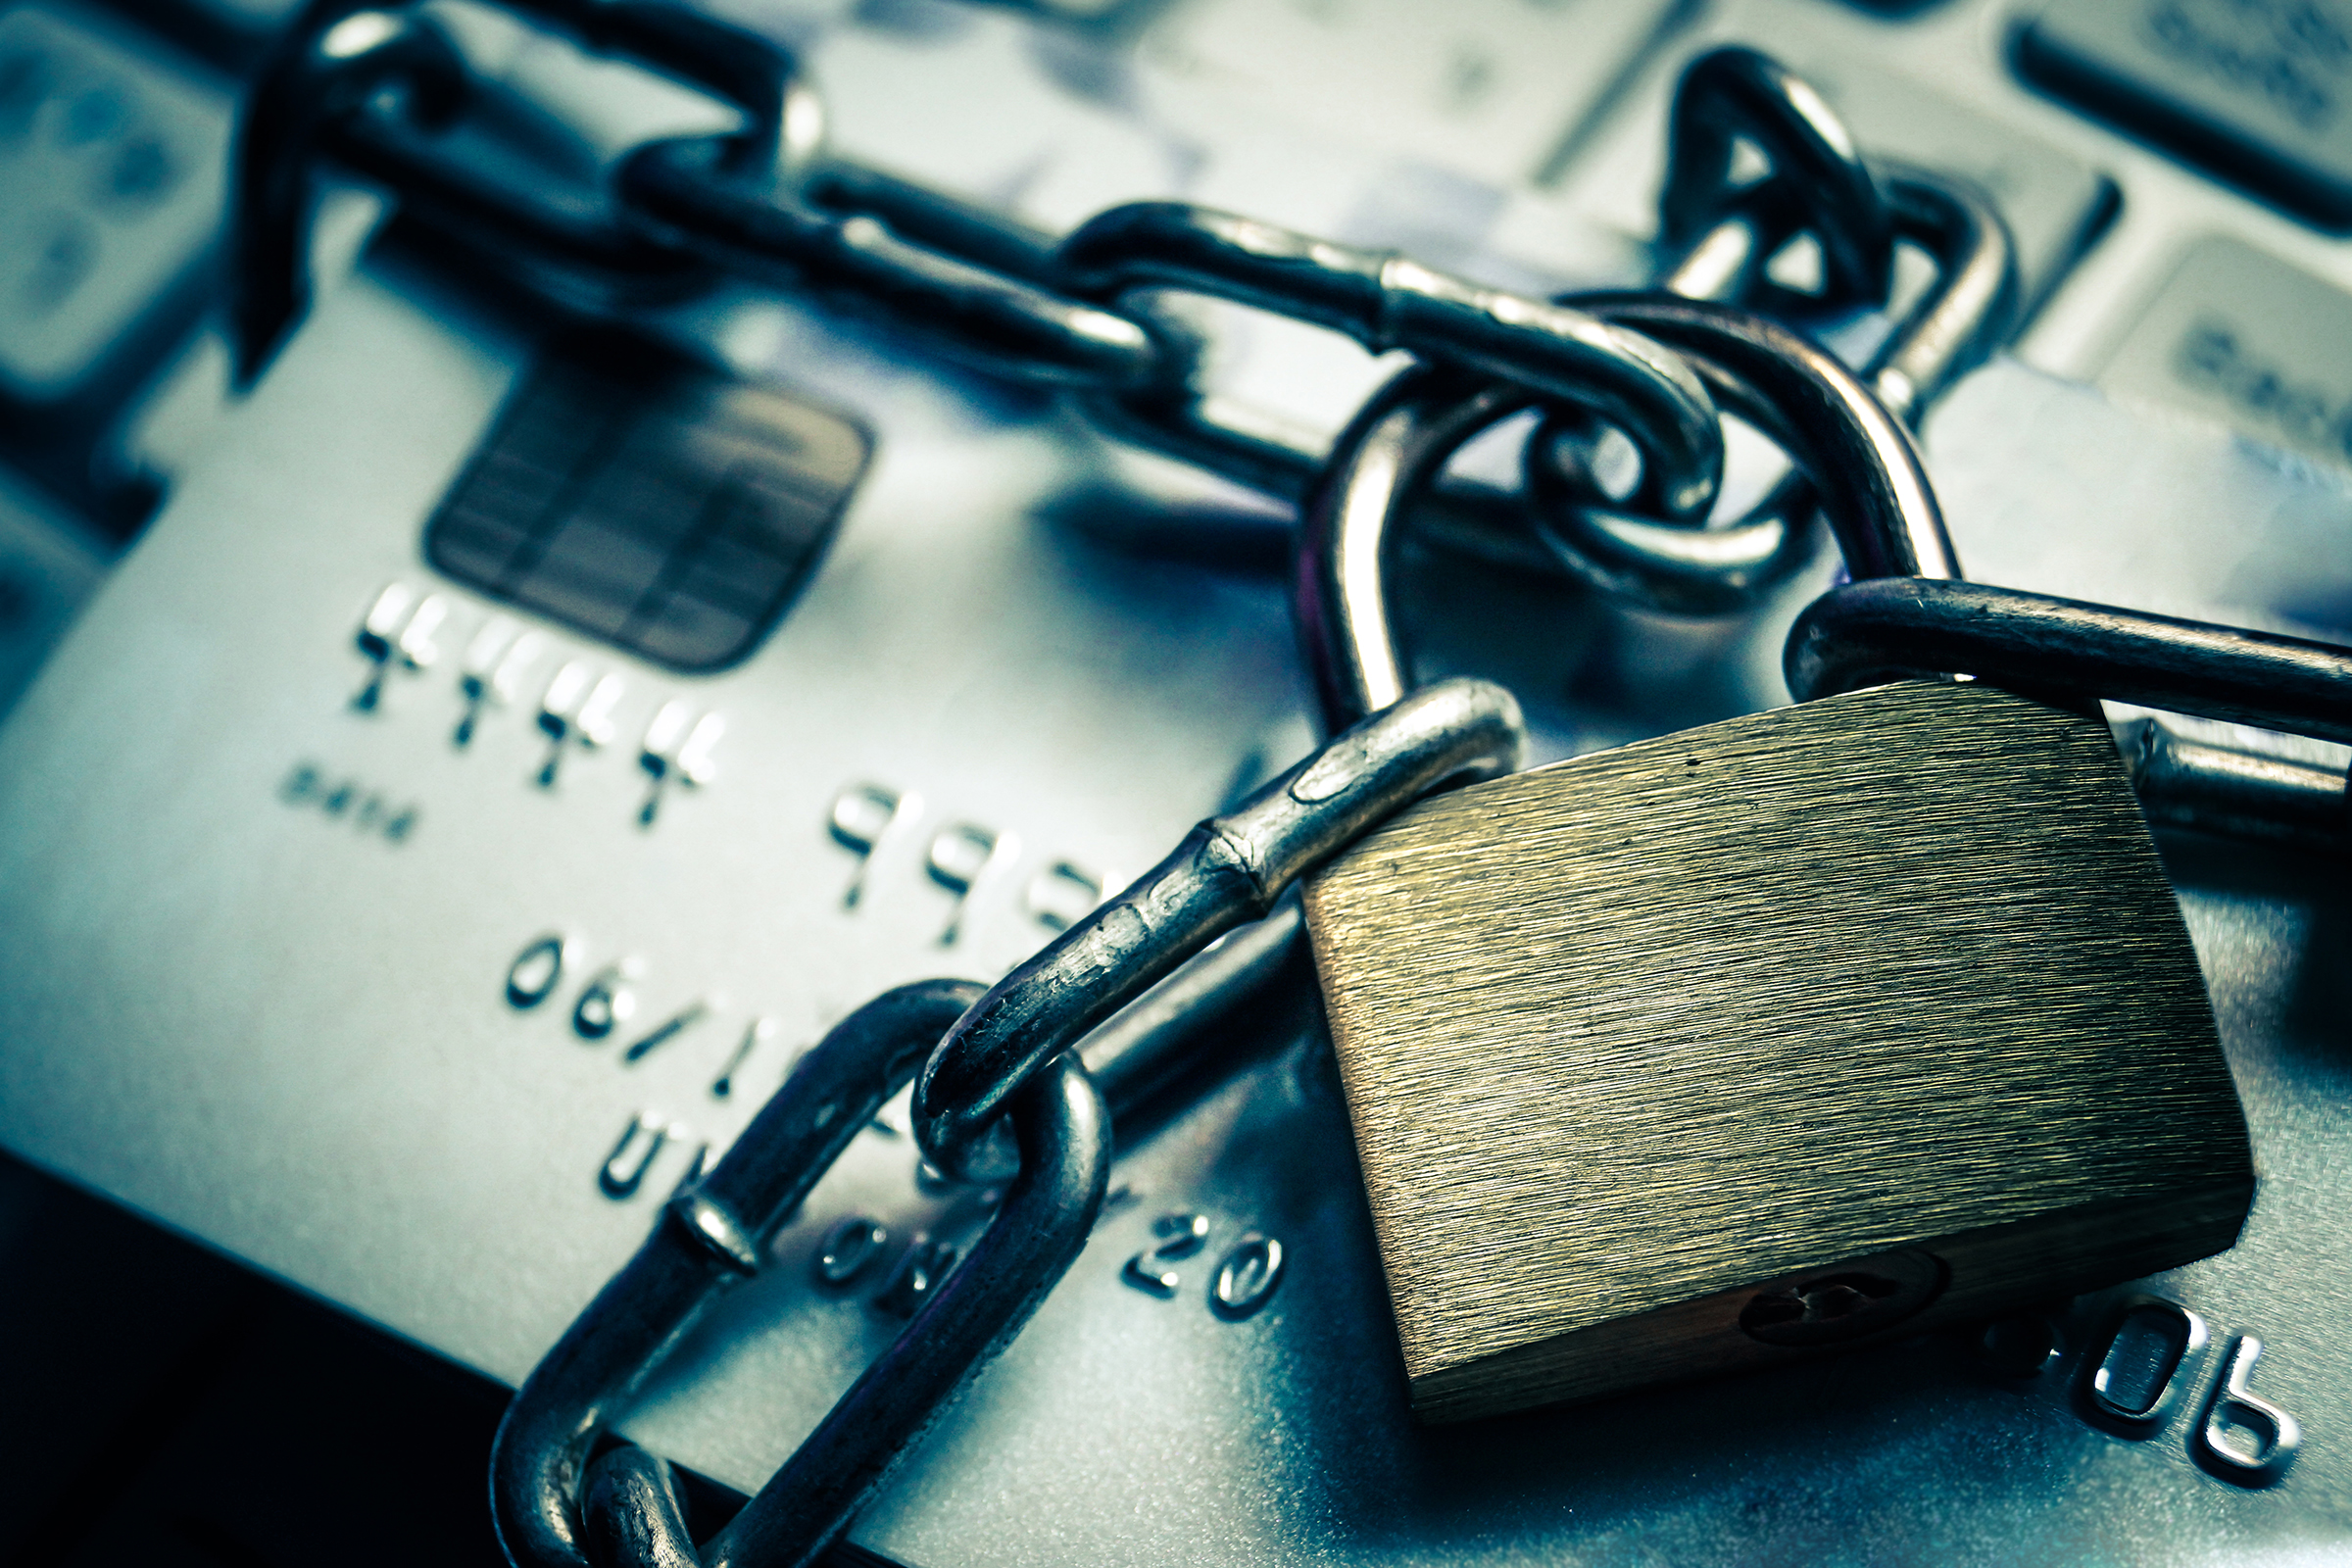 chained credit cards